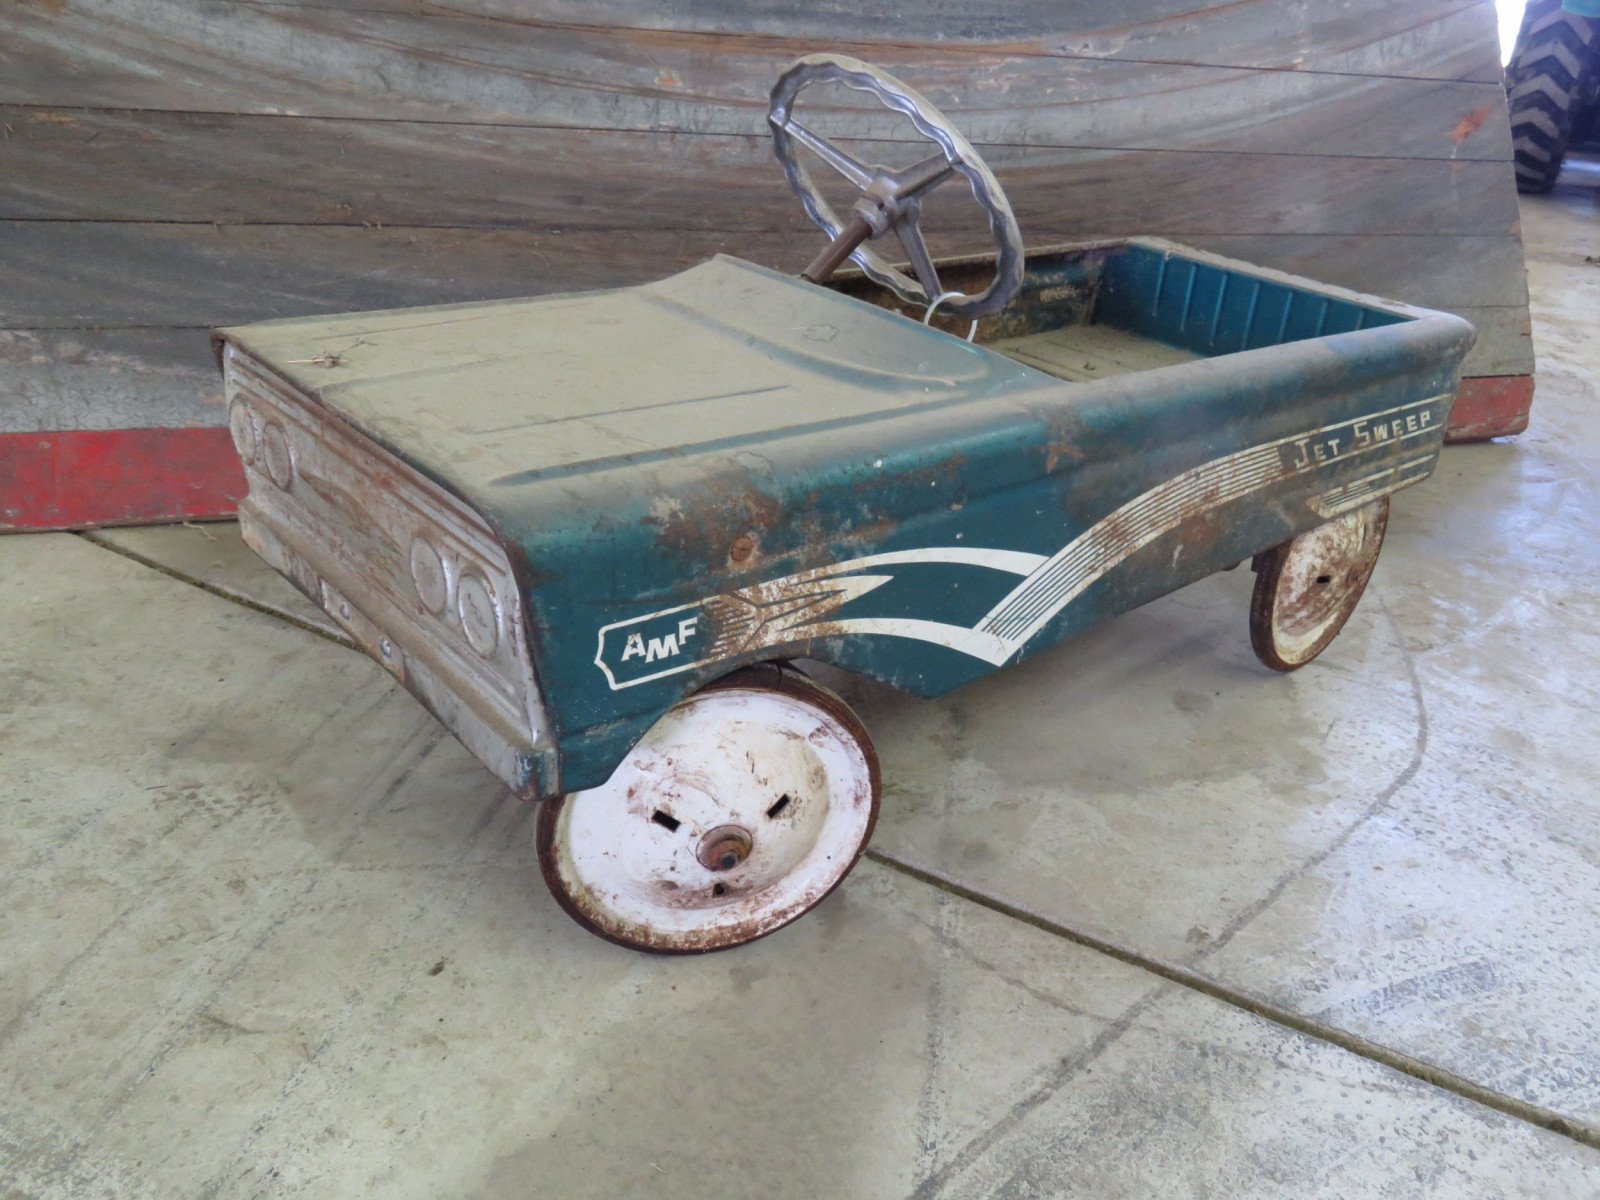 AMF Jet Sweep Vintage Pedal Car - Image 1